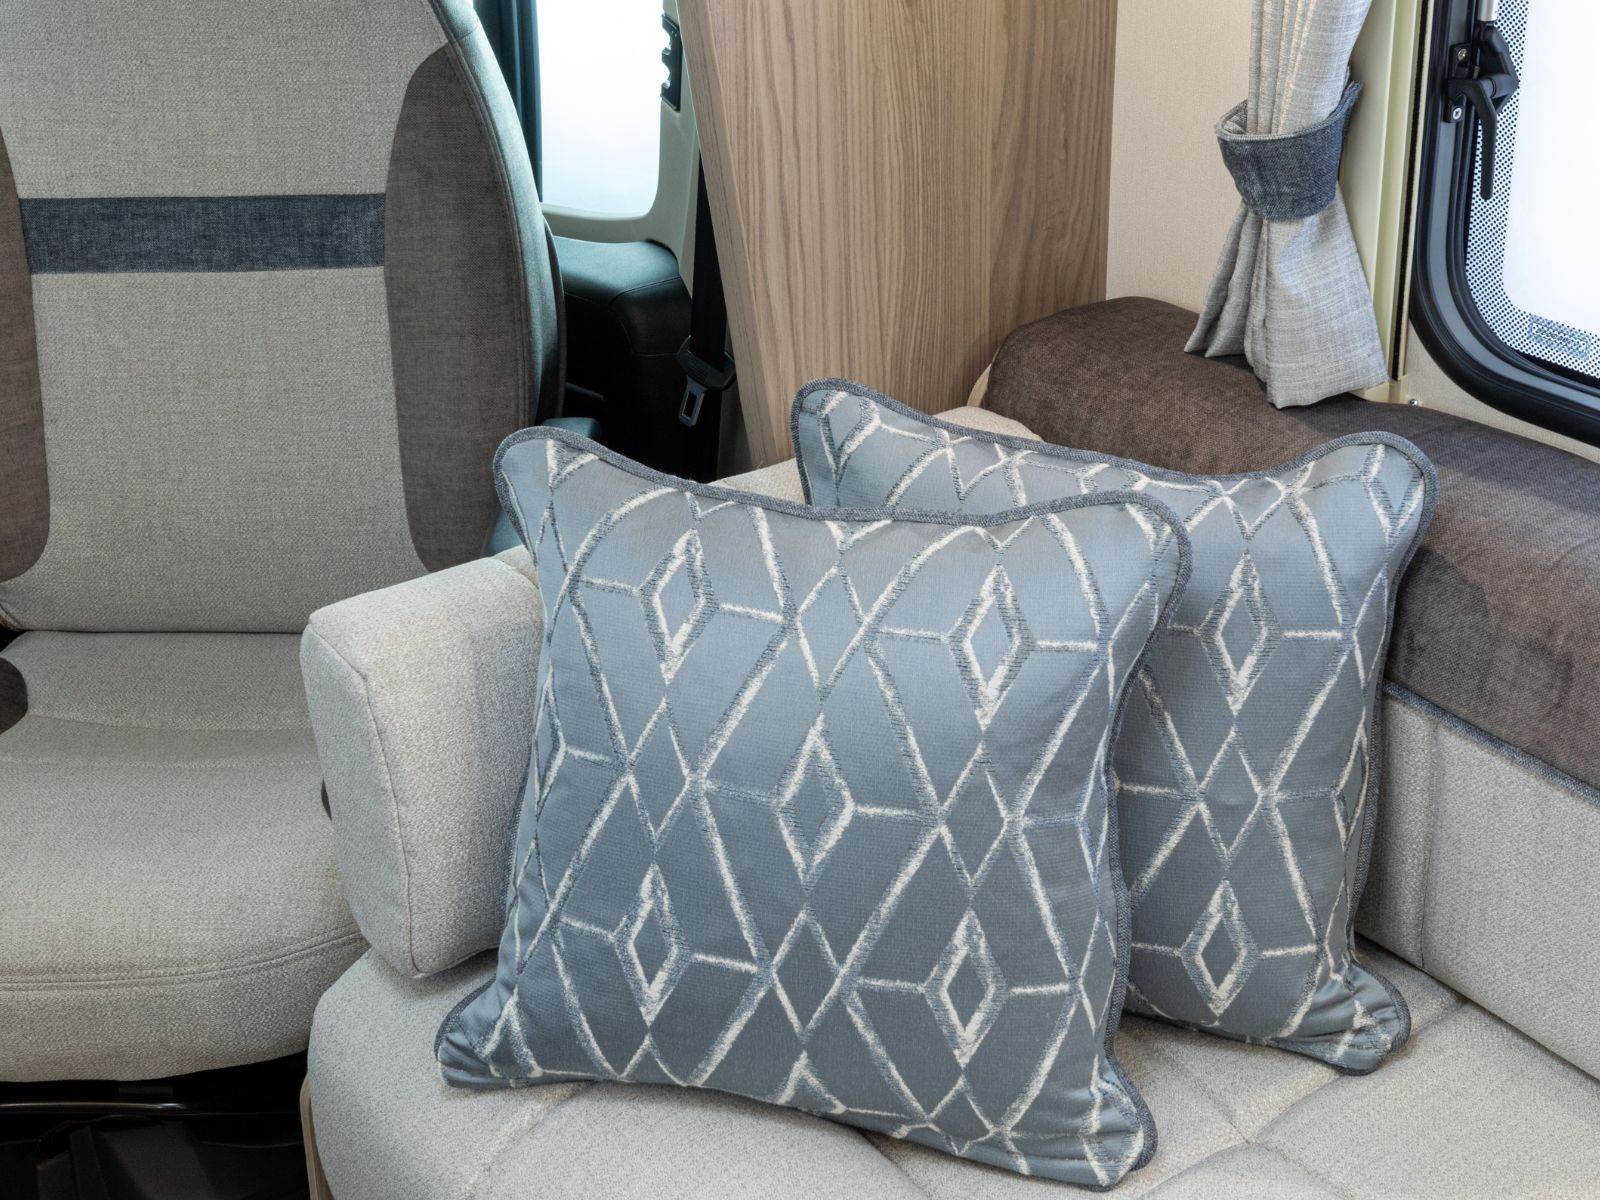 Sofa decorated with cushions and the drivers seat behind it'